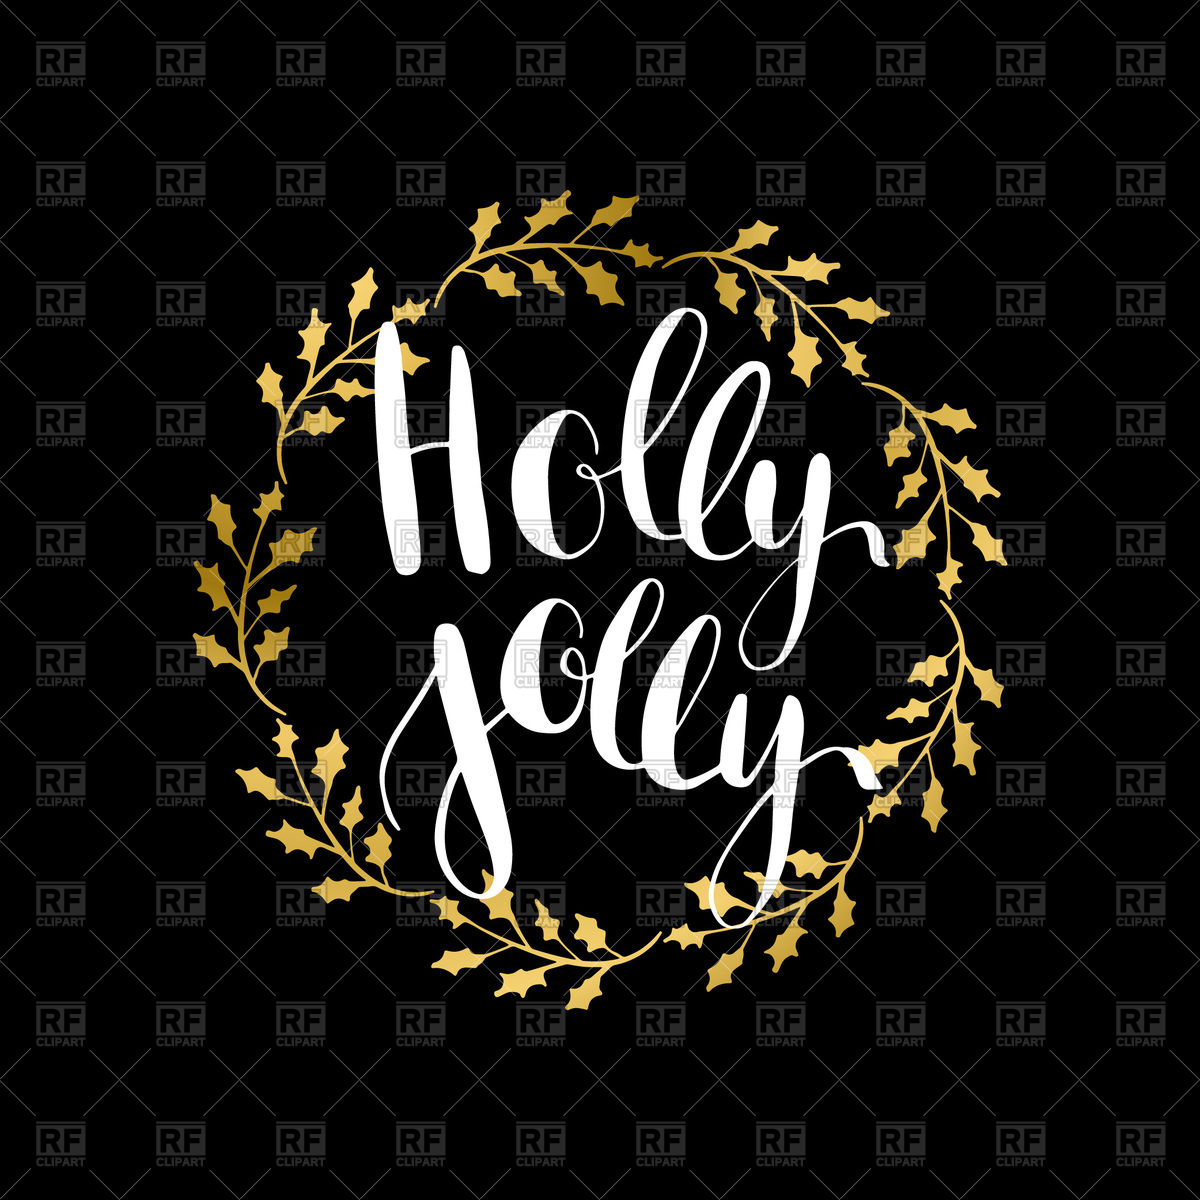 1200x1200 Inscriotion Holly Jolly Inside Golden Holly Wreath Vector Image